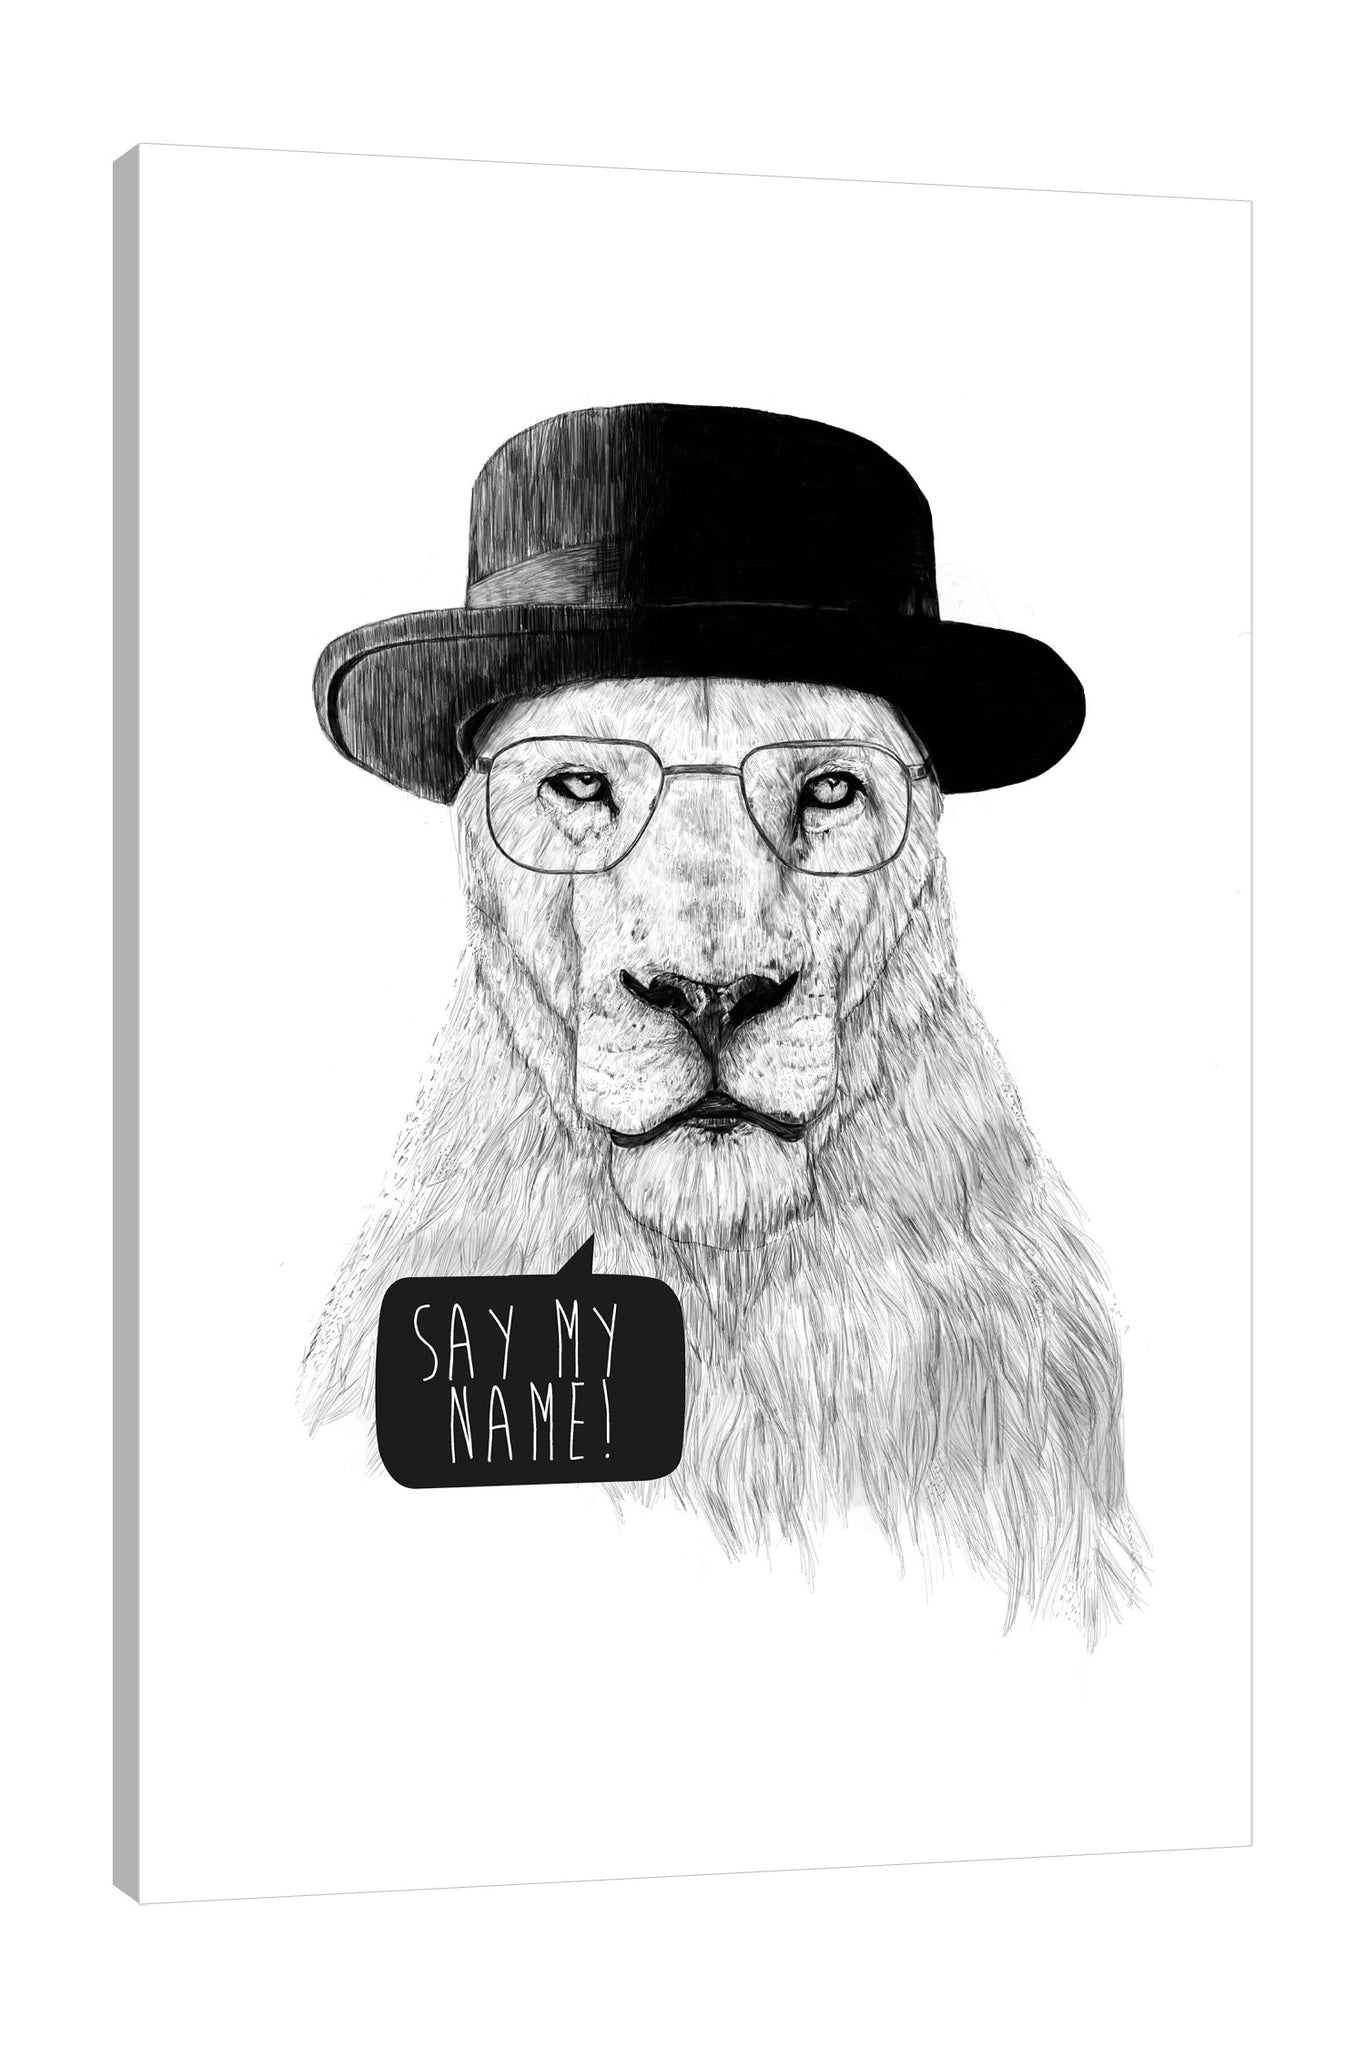 Balazs-Solti,Modern & Contemporary,Animals,Humor,animals,animal,lion,lion,eyeglass,eyeglasses,glasses,words,words and phrases,hats,hat,black and white,Mist Gray,Coral Pink,Black,White